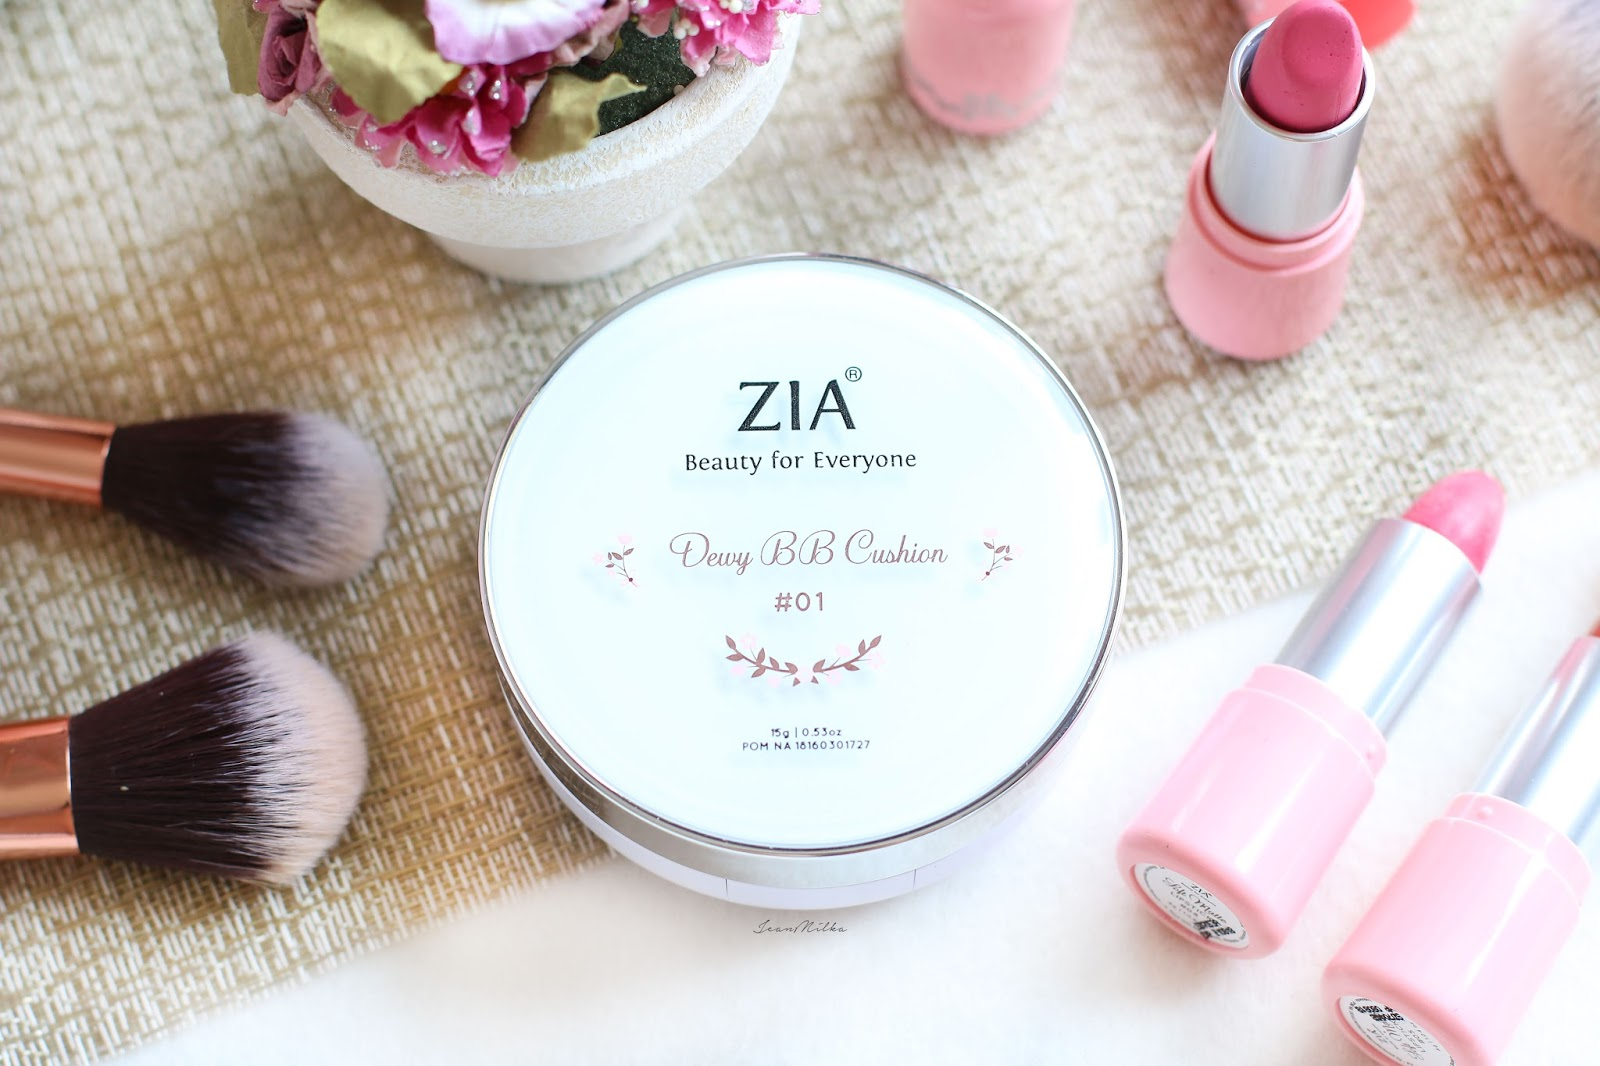 zia, zia skincare, makeup, beauty, produk indonesia, makeup indonesia, produk lokal, review, bb cushion, cushion